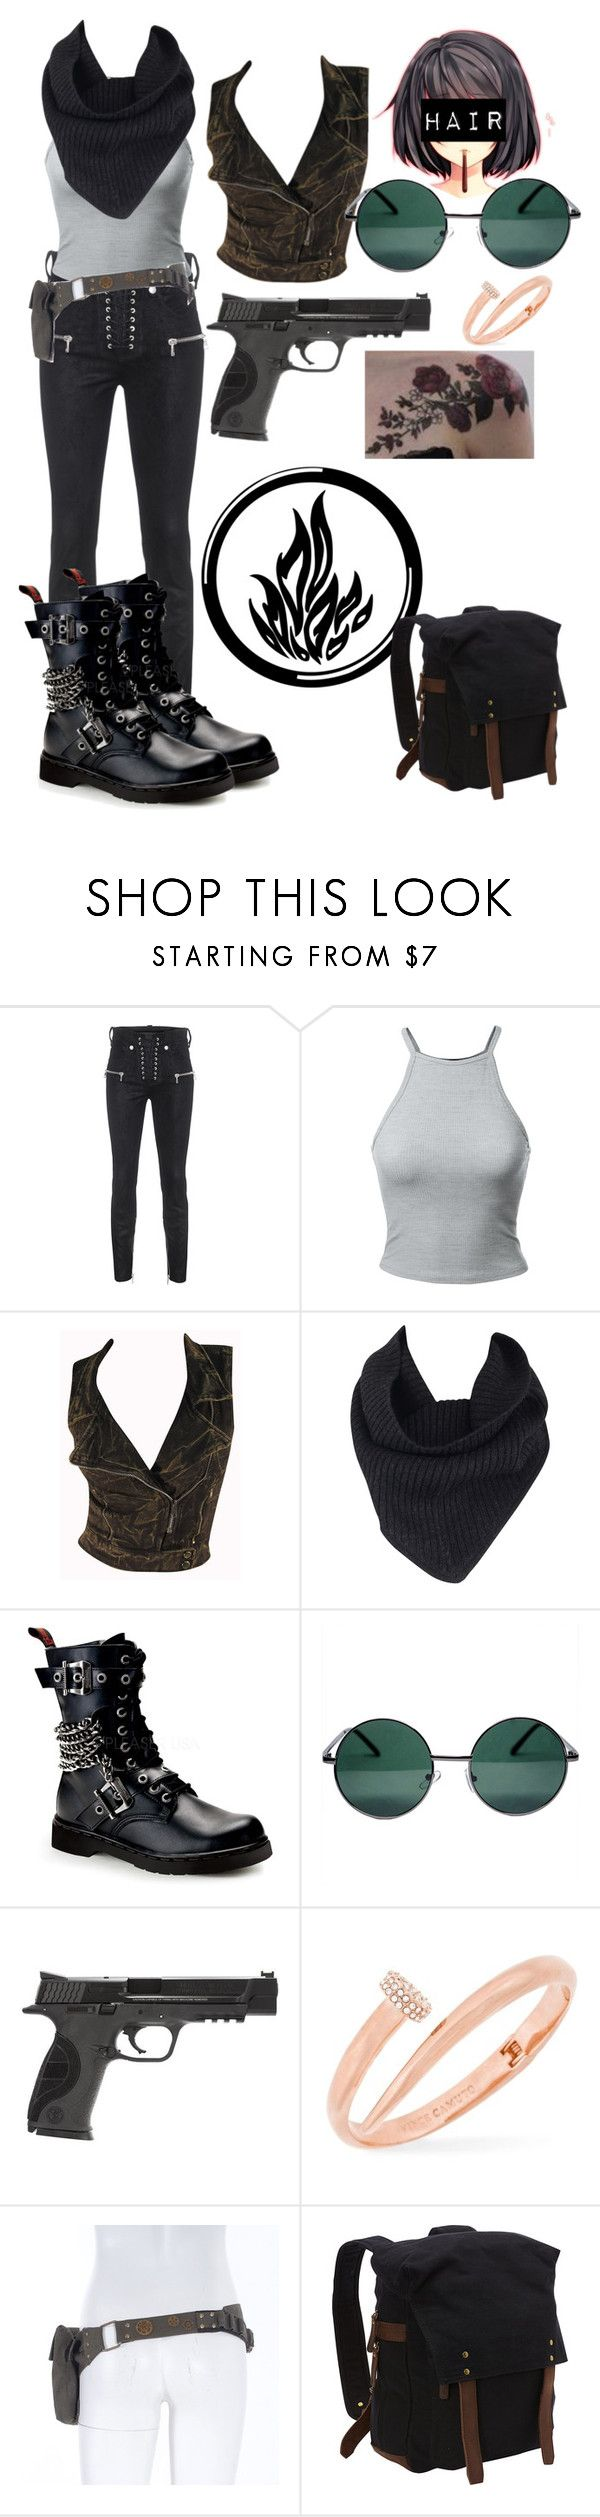 """Divergent hiding In Amity"" by lord-nightshade on Polyvore featuring Unravel, Switchblade Stiletto, A.L.C., Demonia, YHF, Smith & Wesson, Vince Camuto, Vagabond Traveler, black and divergent"